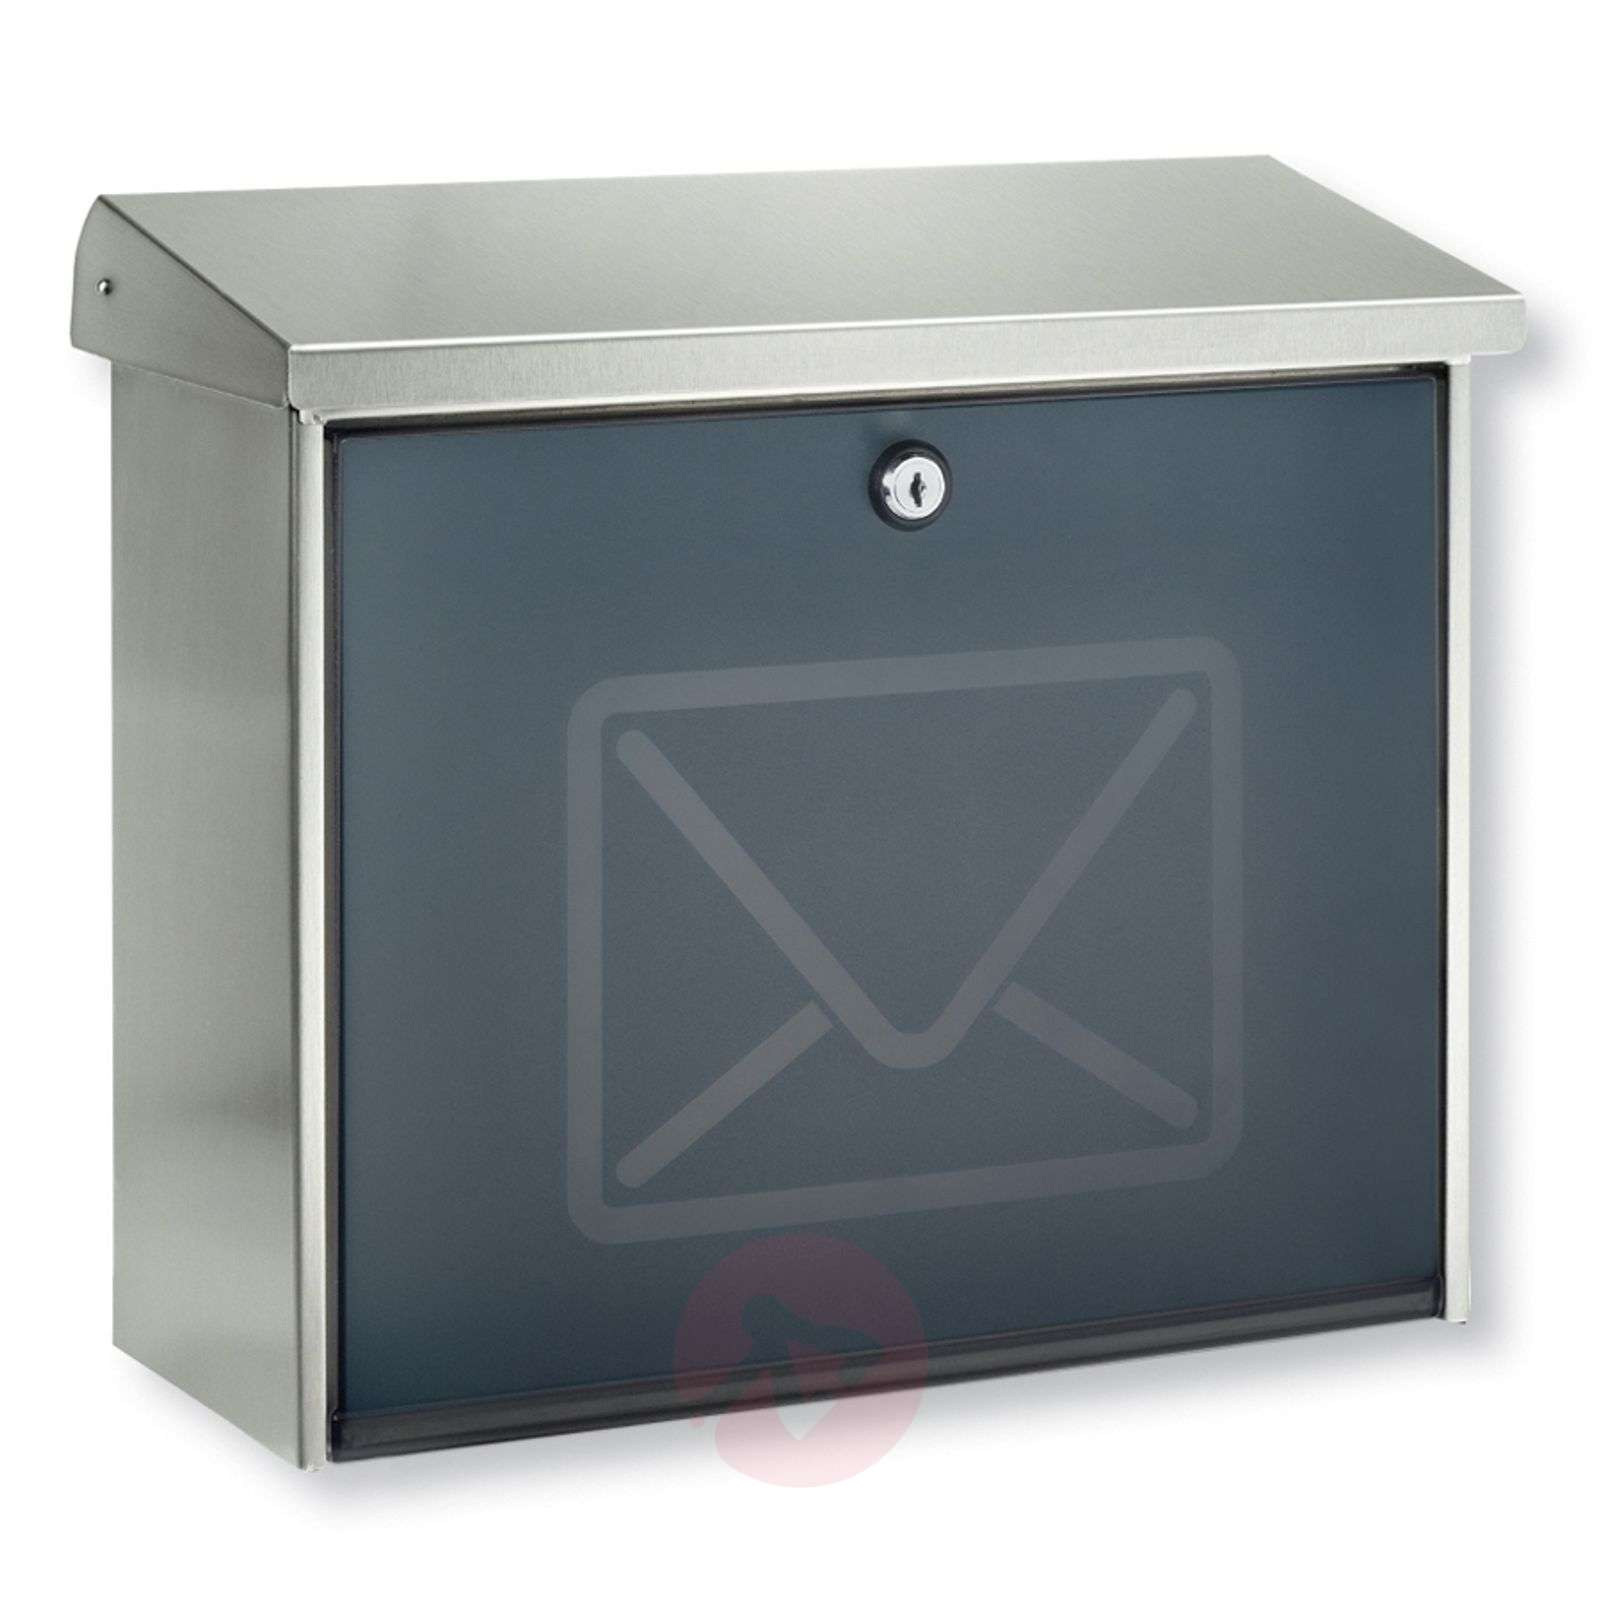 Lucca letter box w/ decorative letter image-1532030-01